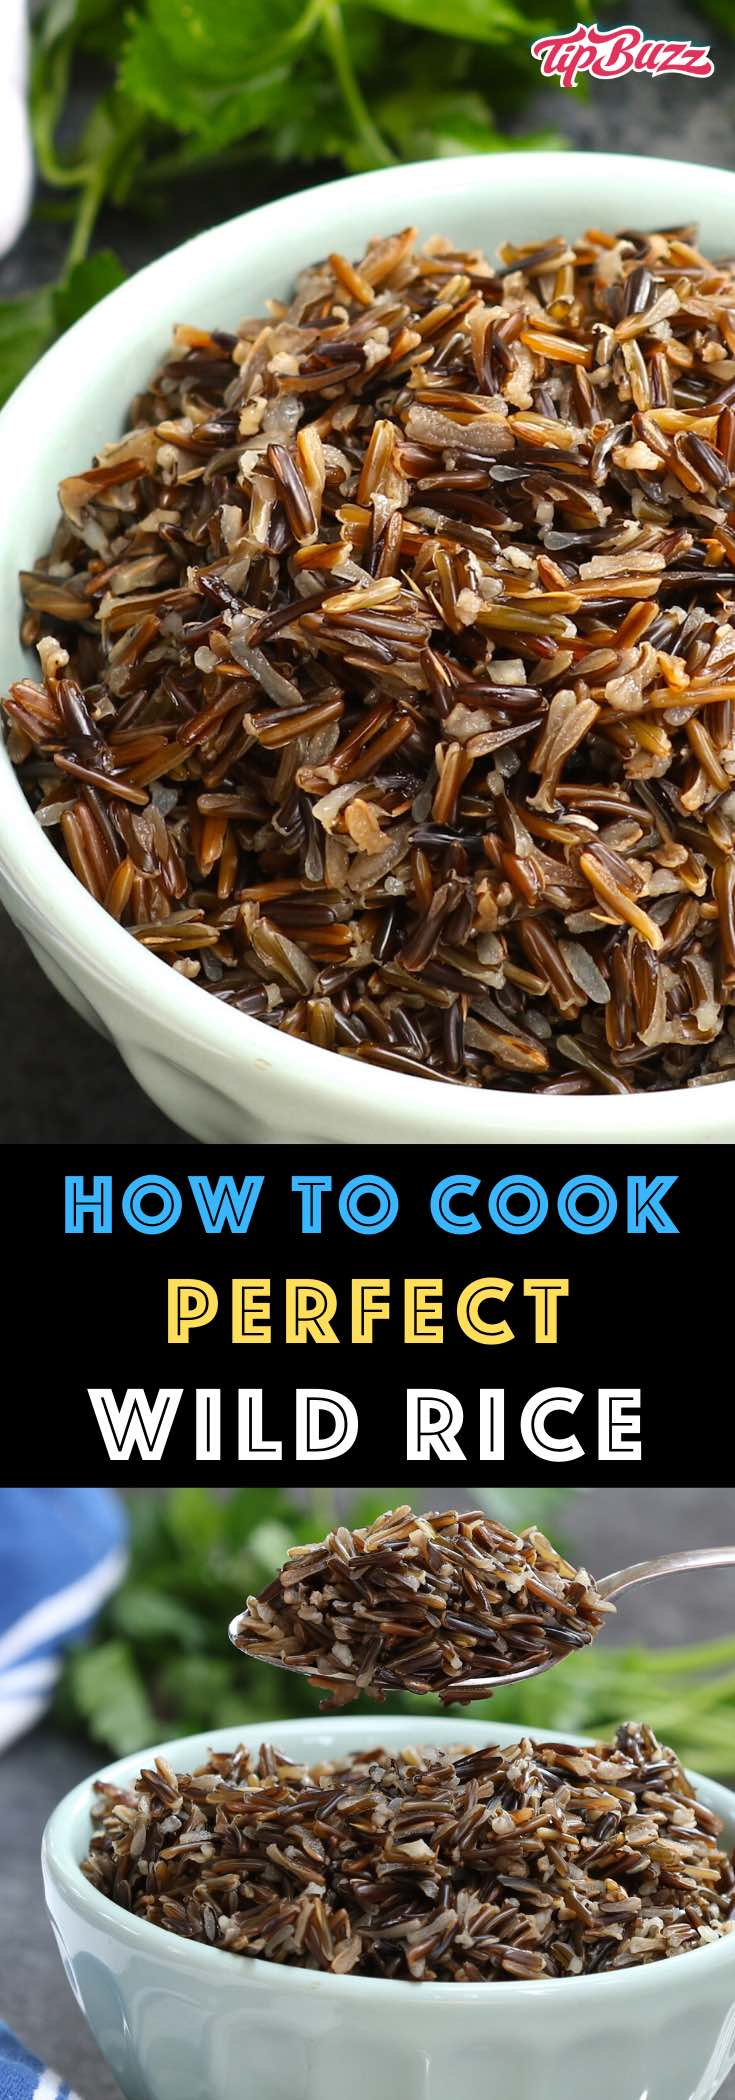 Wild rice is healthy and delicious with a fluffy texture and a nutty flavor. Learn the different ways to make it including stovetop, oven, microwave and Instant Pot!